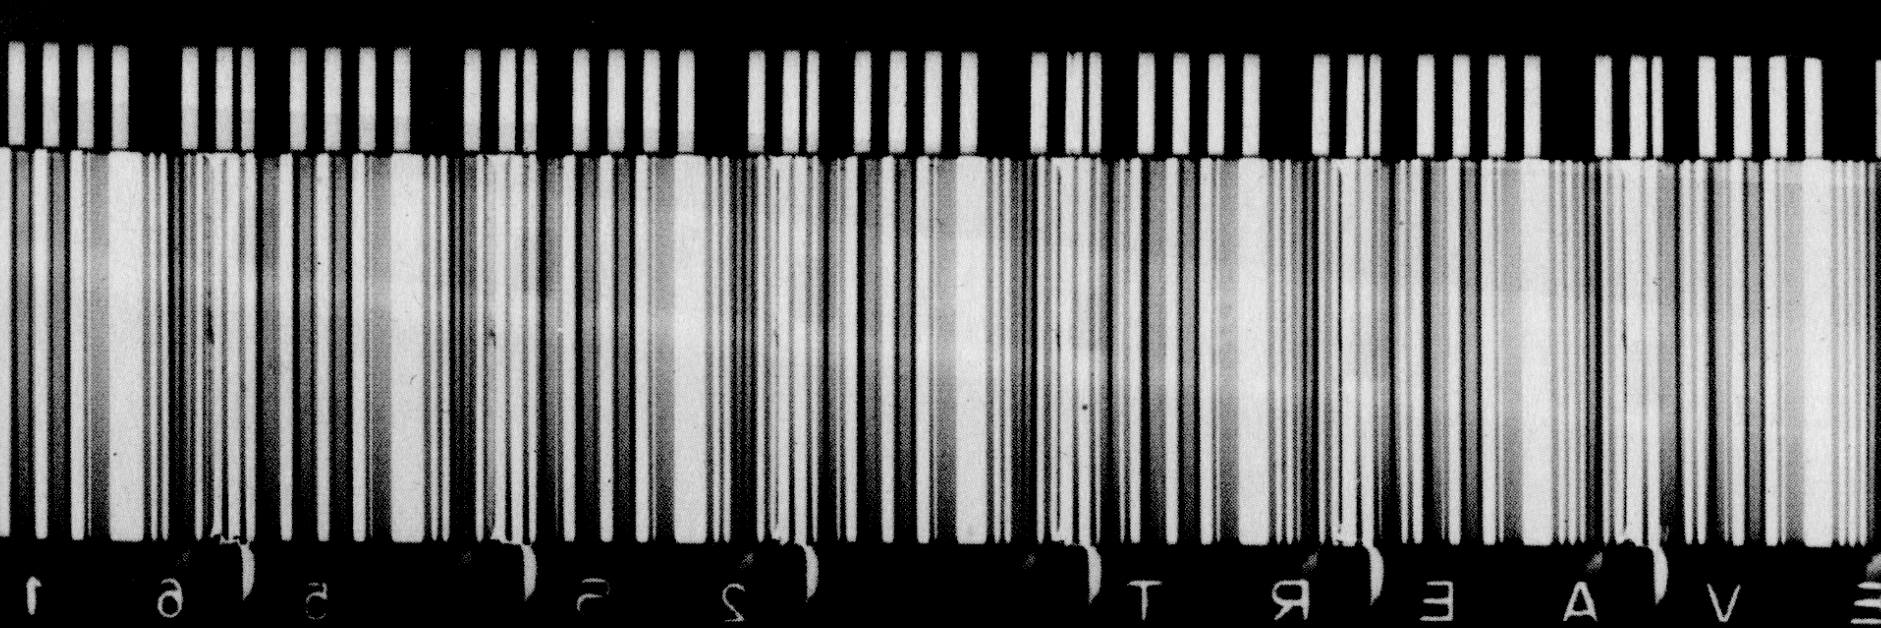 "Light Music    Lis Rhodes  1975-1979 | 25 minutes | UK | 16mm | b&w | sound  In this groundbreaking work, Rhodes plays with our preconception of film by presenting the soundtrack as a series of horizontal and vertical lines that were drawn with pen and ink on the optical edge of the filmstrip. These are projected onto two opposite facing screens in a hazy room. As the films roll, they appear as an 'optical soundtrack'. What the viewer hears, on the other hand, is the audible equivalent of the alternating images on the screens. The space between the two screens turns the beams into airy sculptural forms consisting of light, shadow and smoke, which encourages the viewer to move around the room. This in turns destroys conventional film watching codes and turns the film into a collective practice where the audience is expected to intervene into the work and thus, become the performer. This work was the artist's reaction to what she perceives as a lack of interest and appreciation of European women composers. Thus in  Light Music , Lis Rhodes interweaves cinematic practices with a range of topics from gender politics to phenomenological experience. -Deren Erelçin  The film is not complete as a totality; it could well be different and still achieve its purpose of exploring the possibilities of optical sound. It is as much about sound as it is about image; their relationship is necessarily dependent as the optical soundtrack ""makes"" the music. It is the machinery itself that imposes this relationship. The image throughout is composed of straight lines. It need not have been. –  Lis Rhodes"